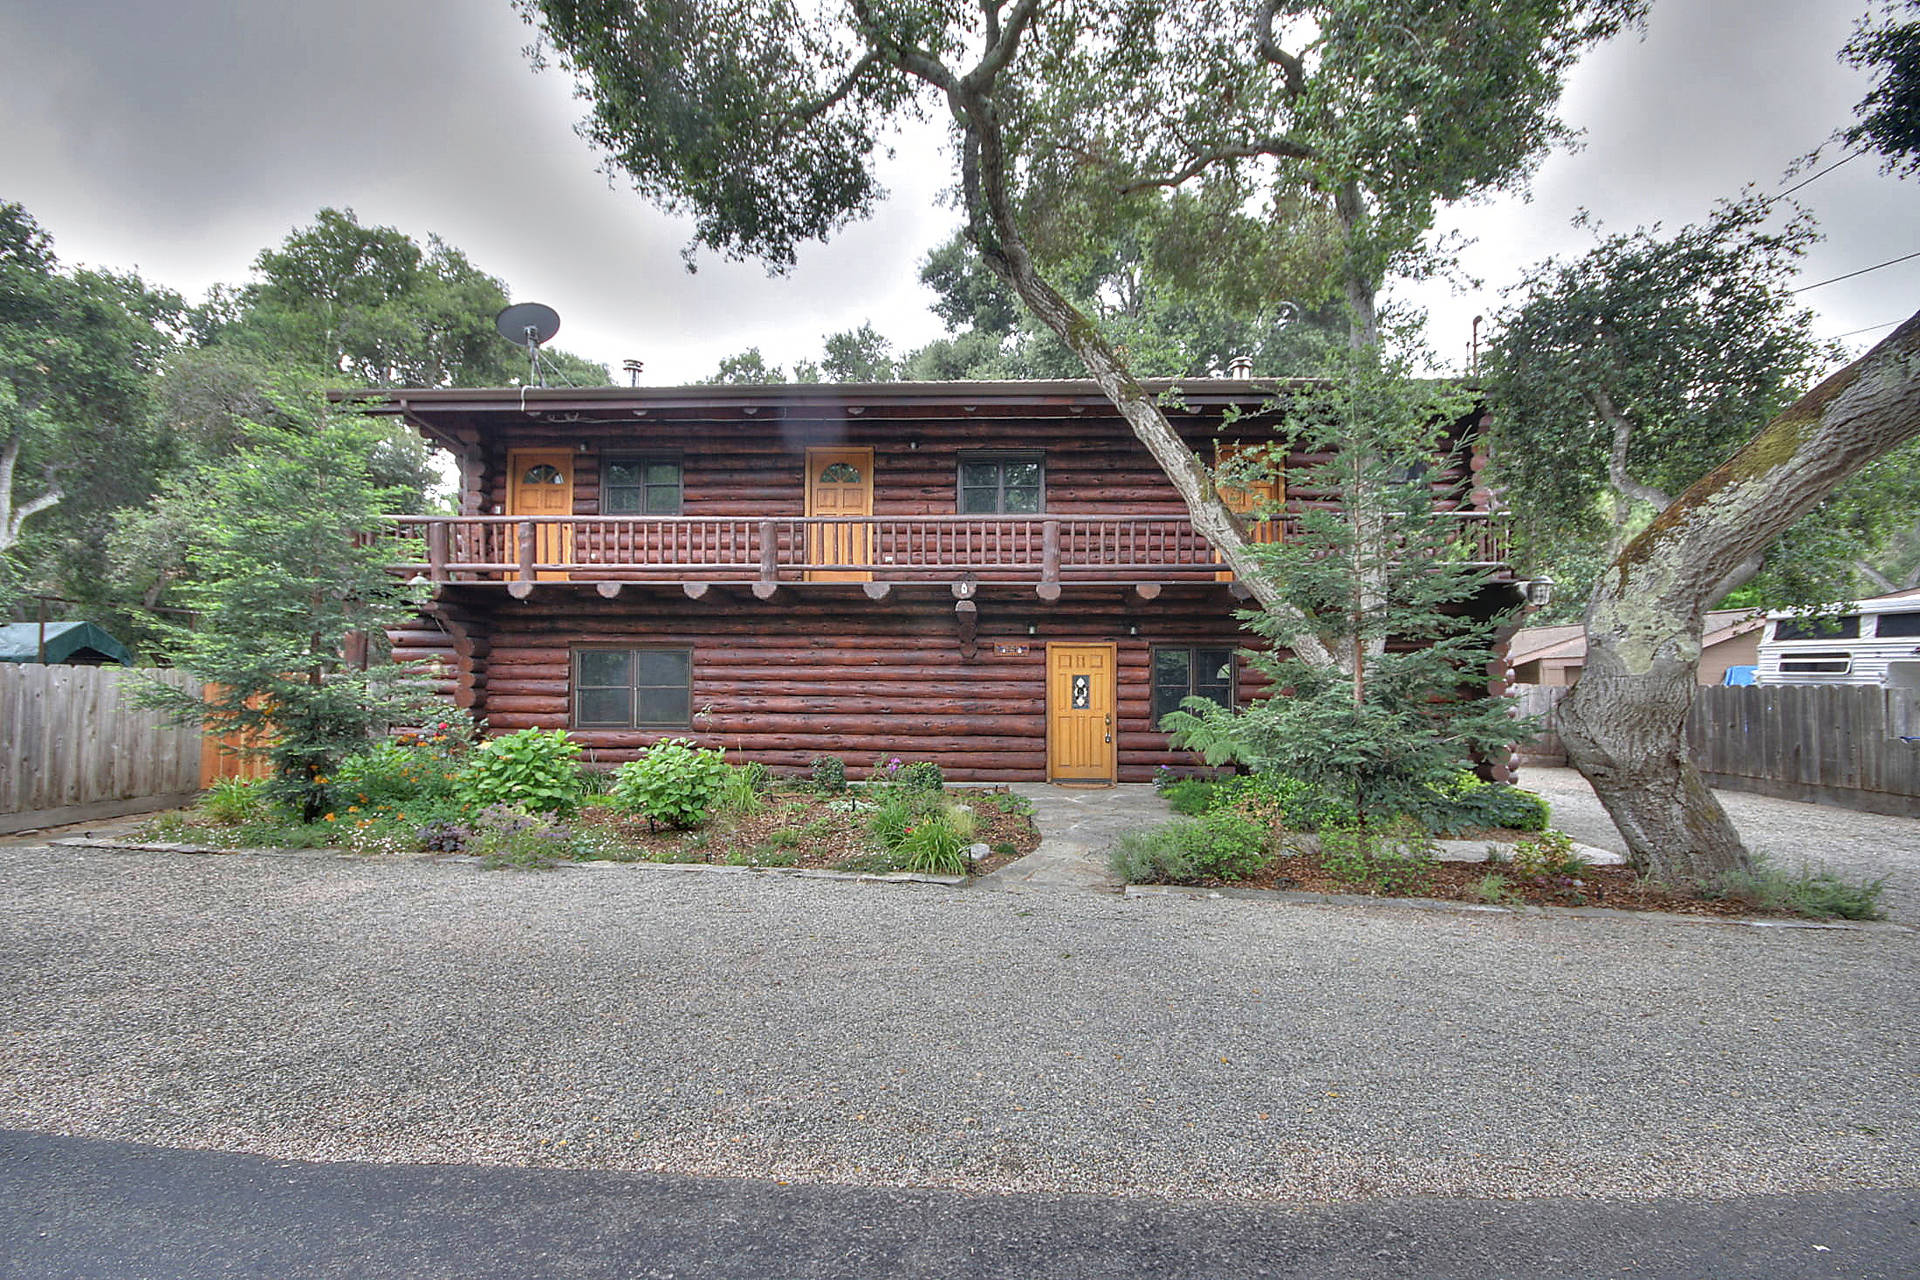 carmel valley village log cabin for sale